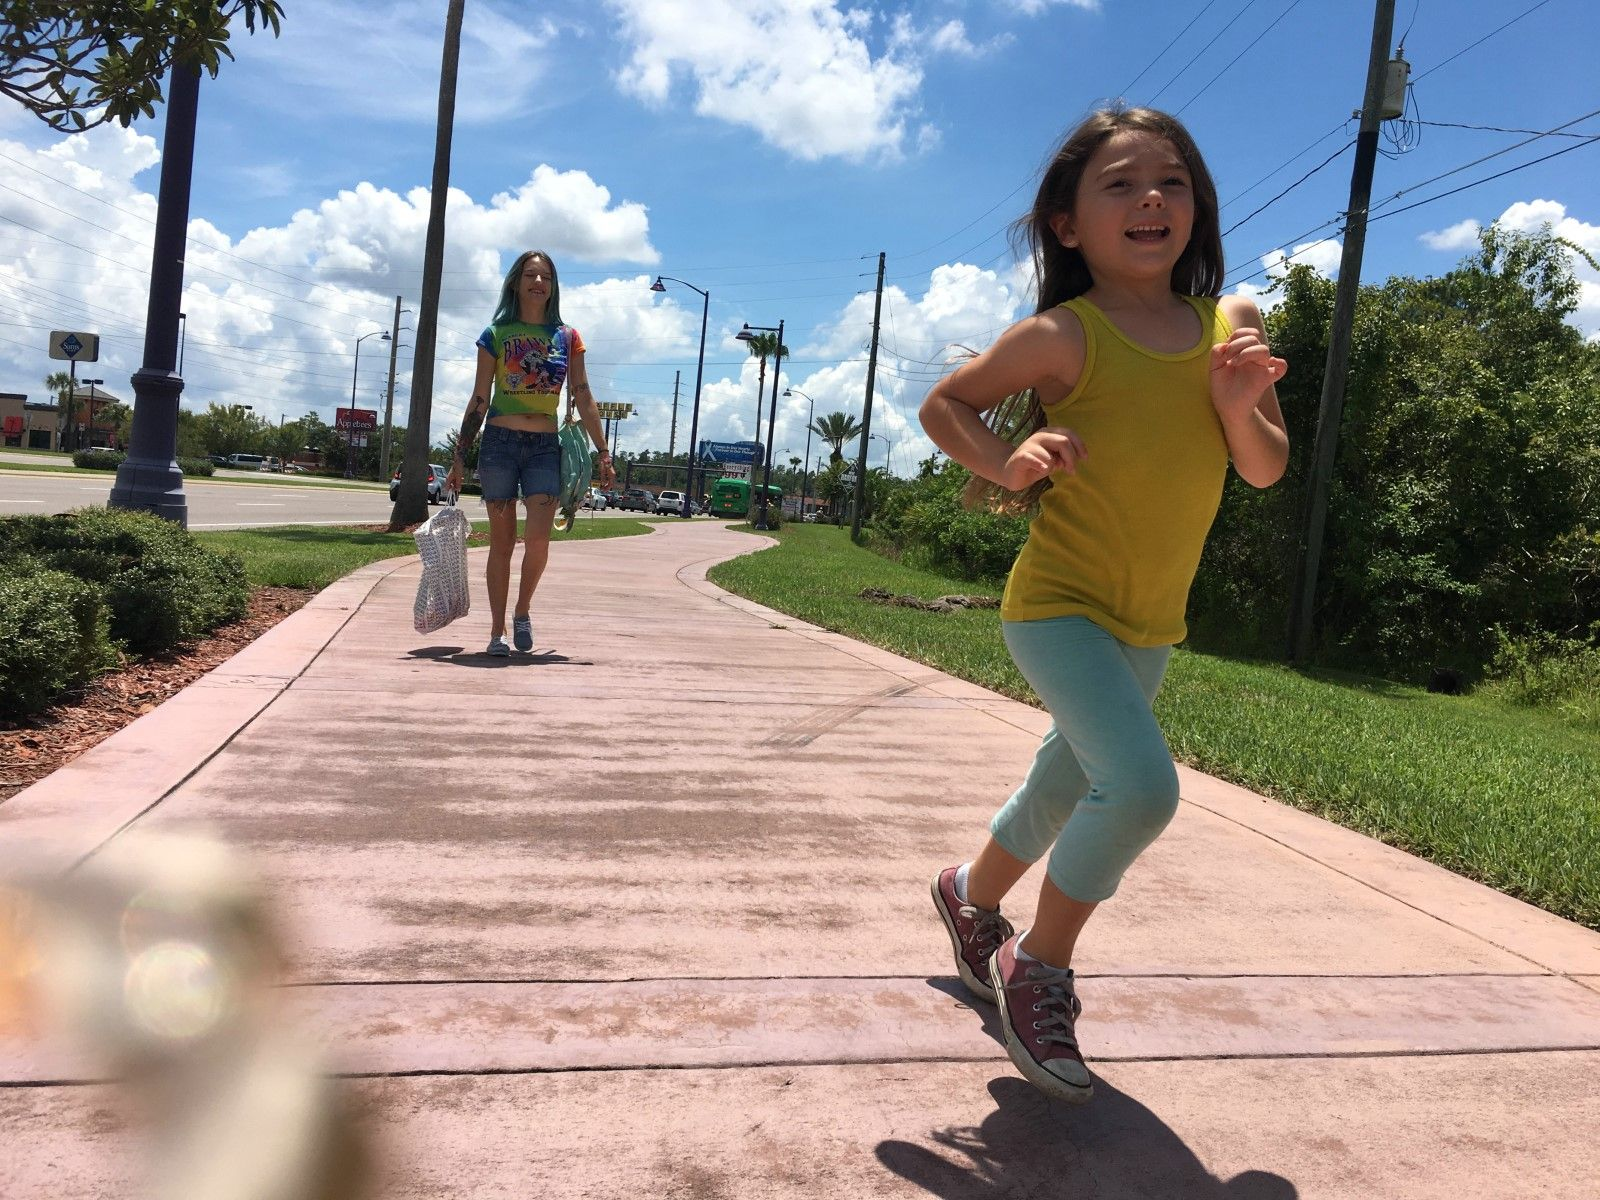 The Florida Project - Art et essai | Le Fresnoy - Studio national ...